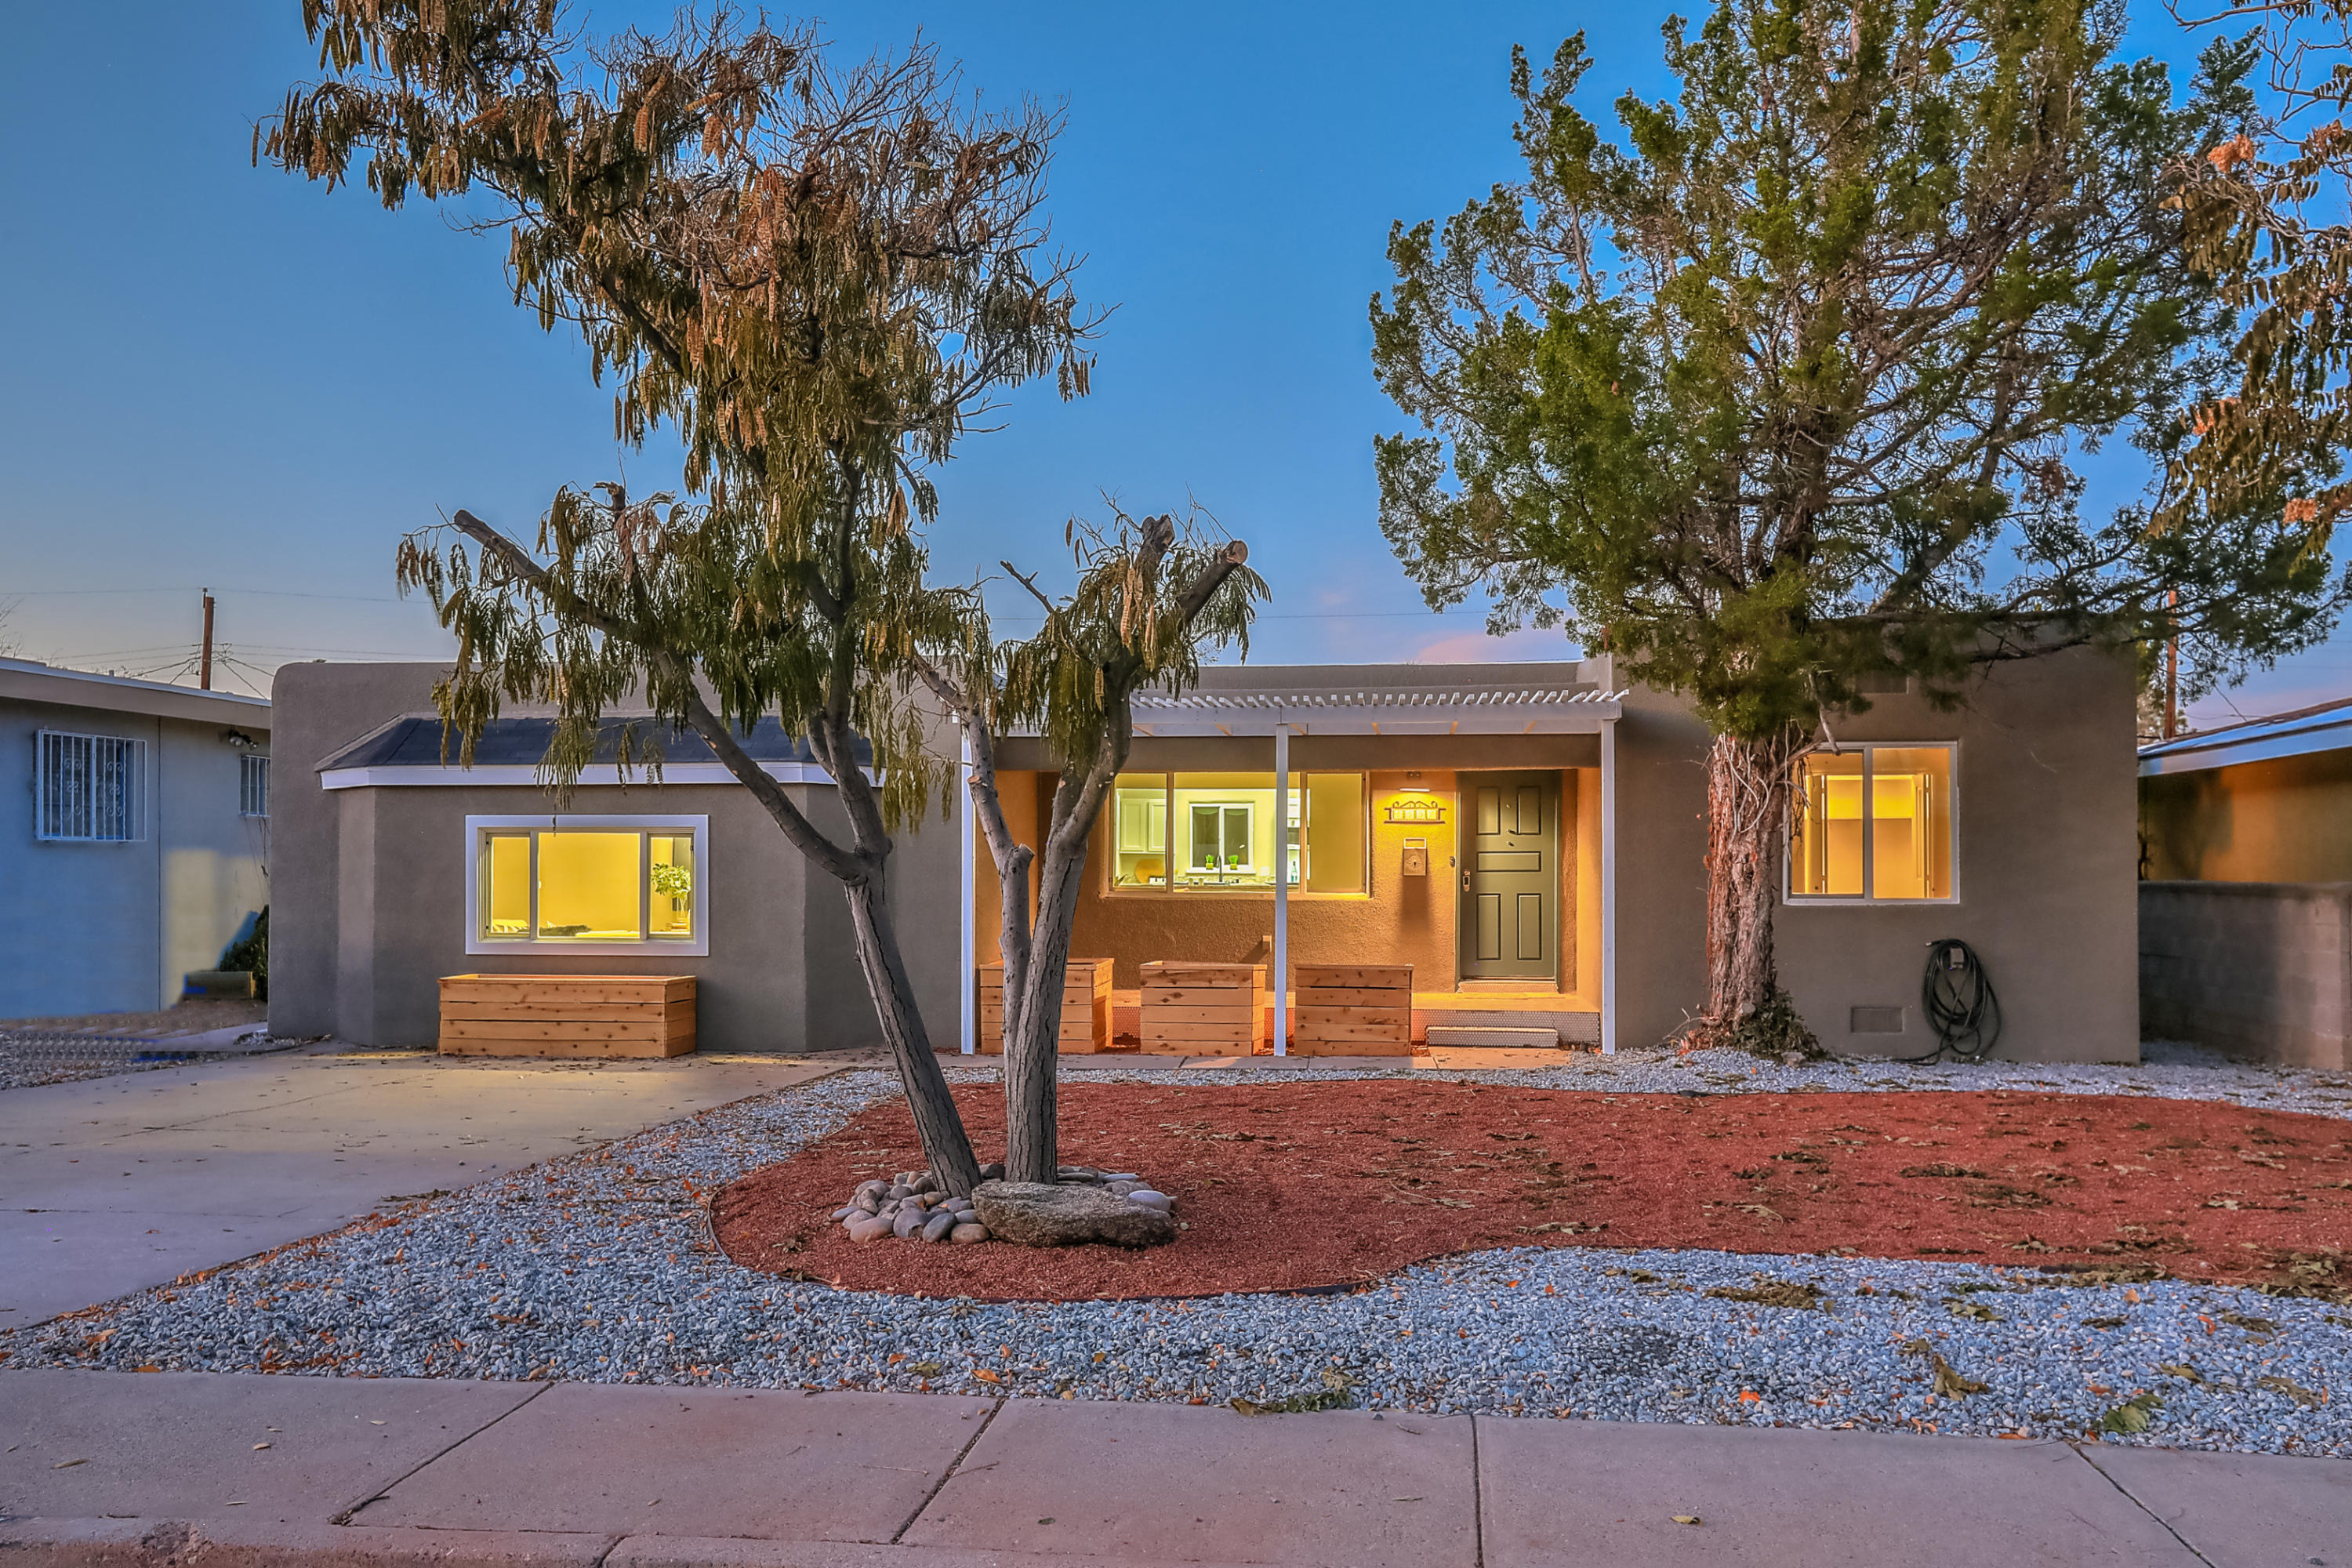 Cool modern feel, with a neighborhood of green trees and Nob Hill lifestyle living.  Come enjoy this amazingly updated and remodeled 1718 sq, double living area dream home.  3107 steps from historic RT66, dinning, coffee and amazing ABQ history.  Refinished floors, new tile, cabinets, windows and much much more.  Priced to sell and move in ready!!